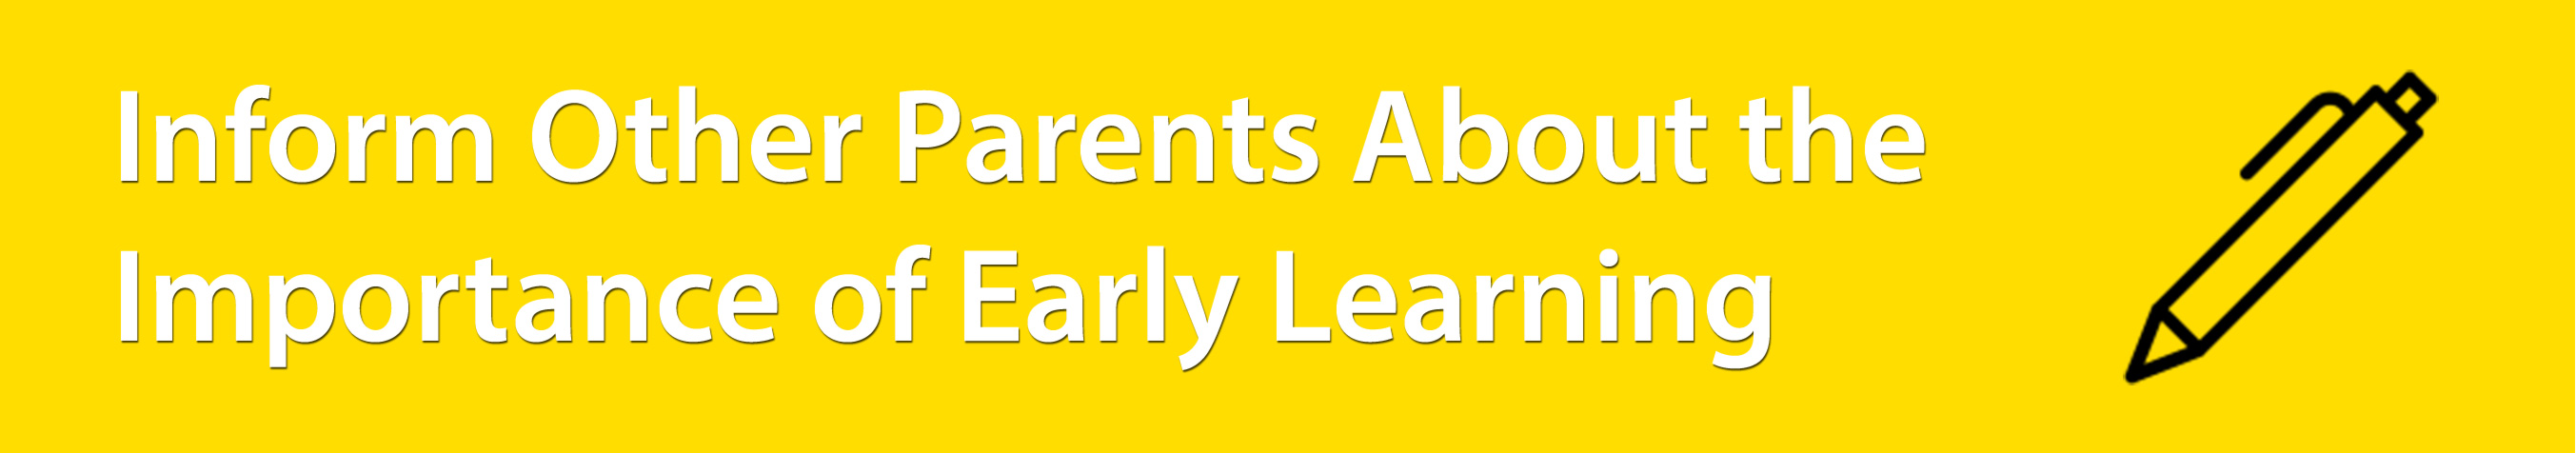 Inform Other Parents About the Importance of Early Language Learning